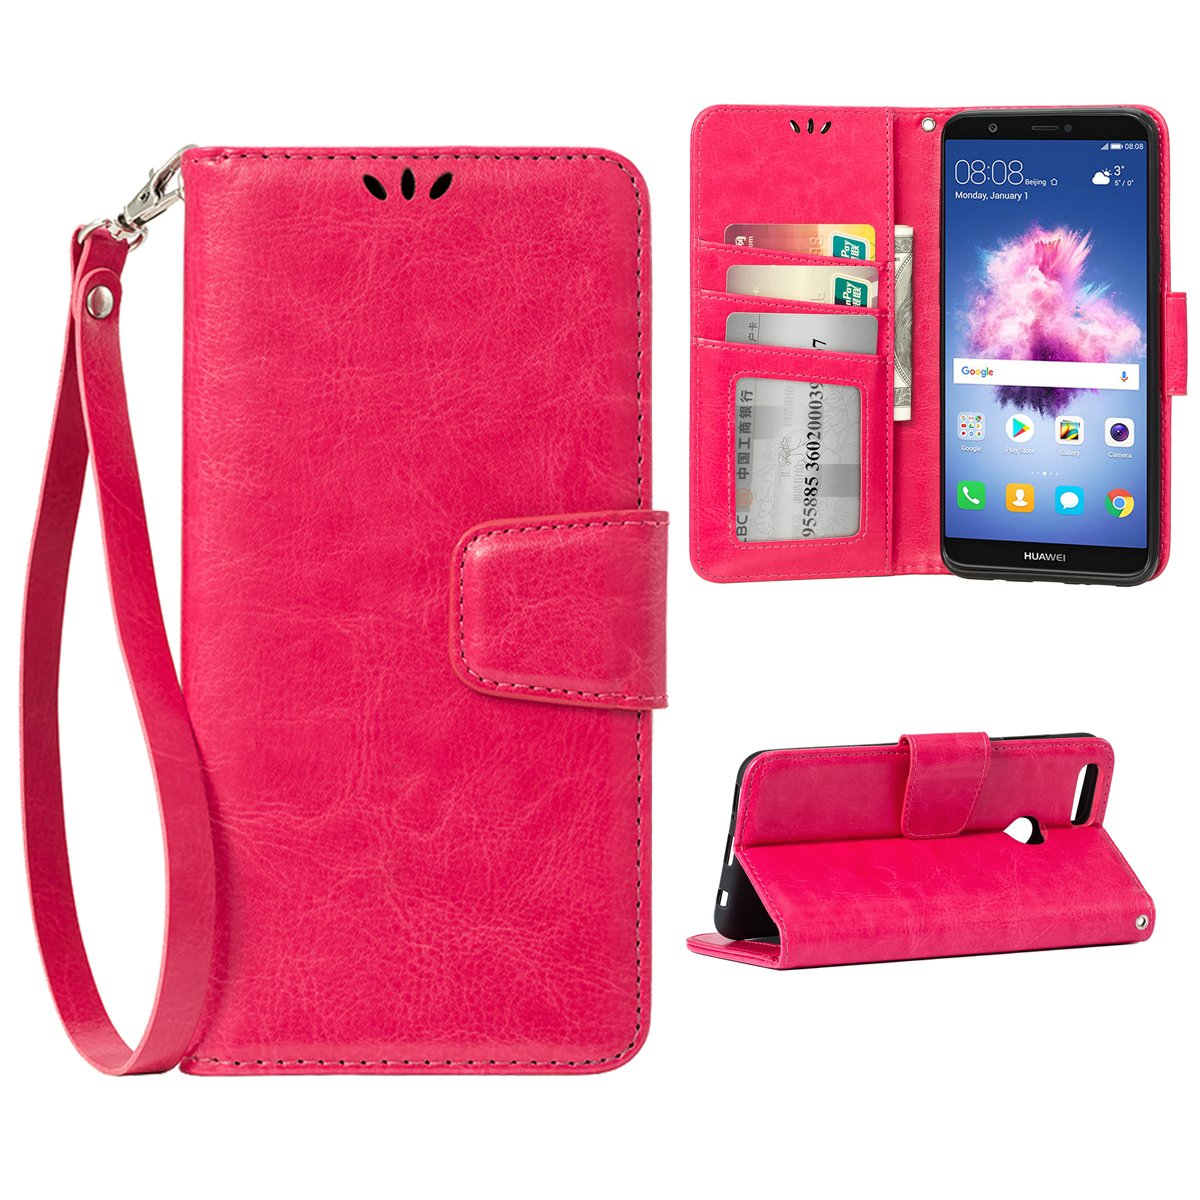 Teebo Flip case for Huawei P Smart (2018), Premium PU Leather Stand Function with Card Slots Holder Wallet Phone Protective Case for Huawei P Smart, Rose Red